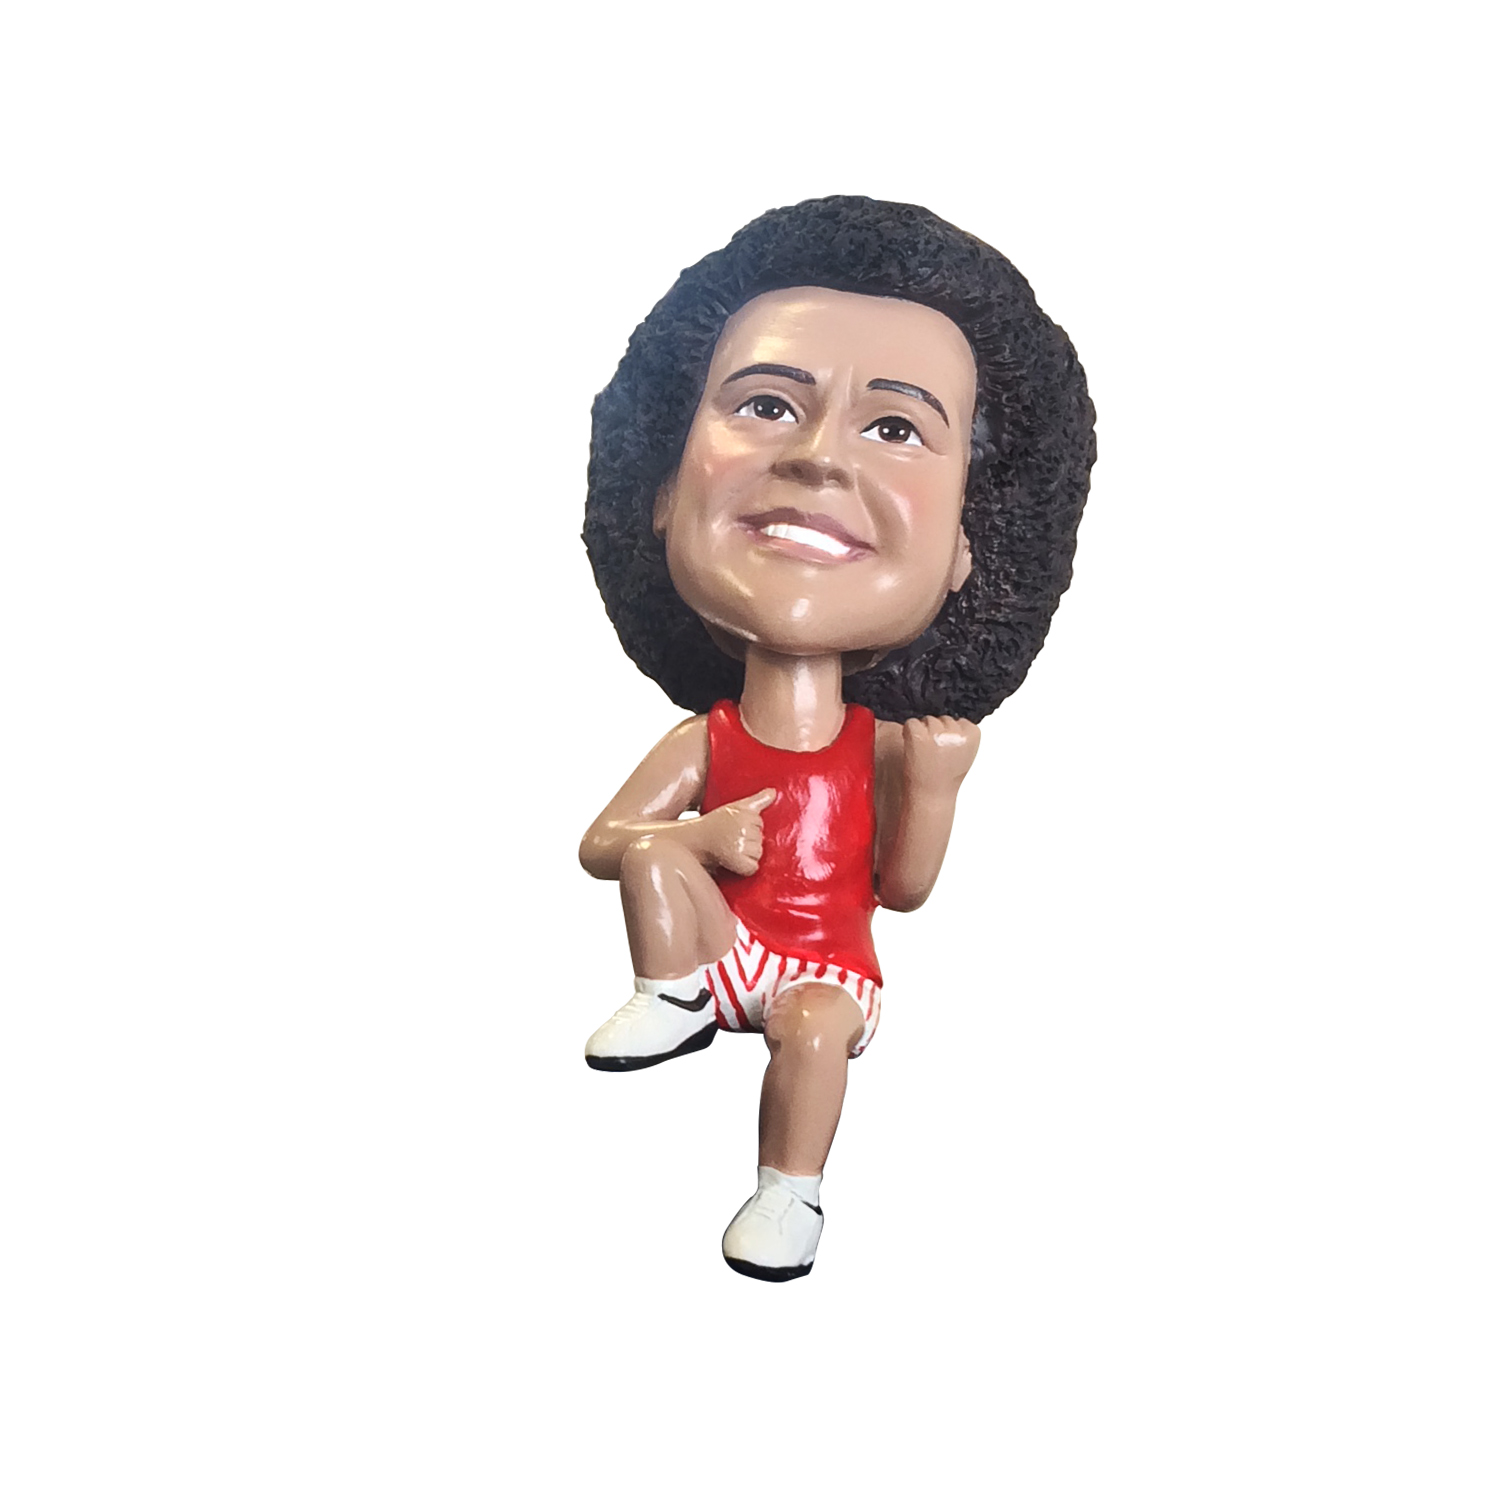 Richard Simmons Bobble Buddy Gallery